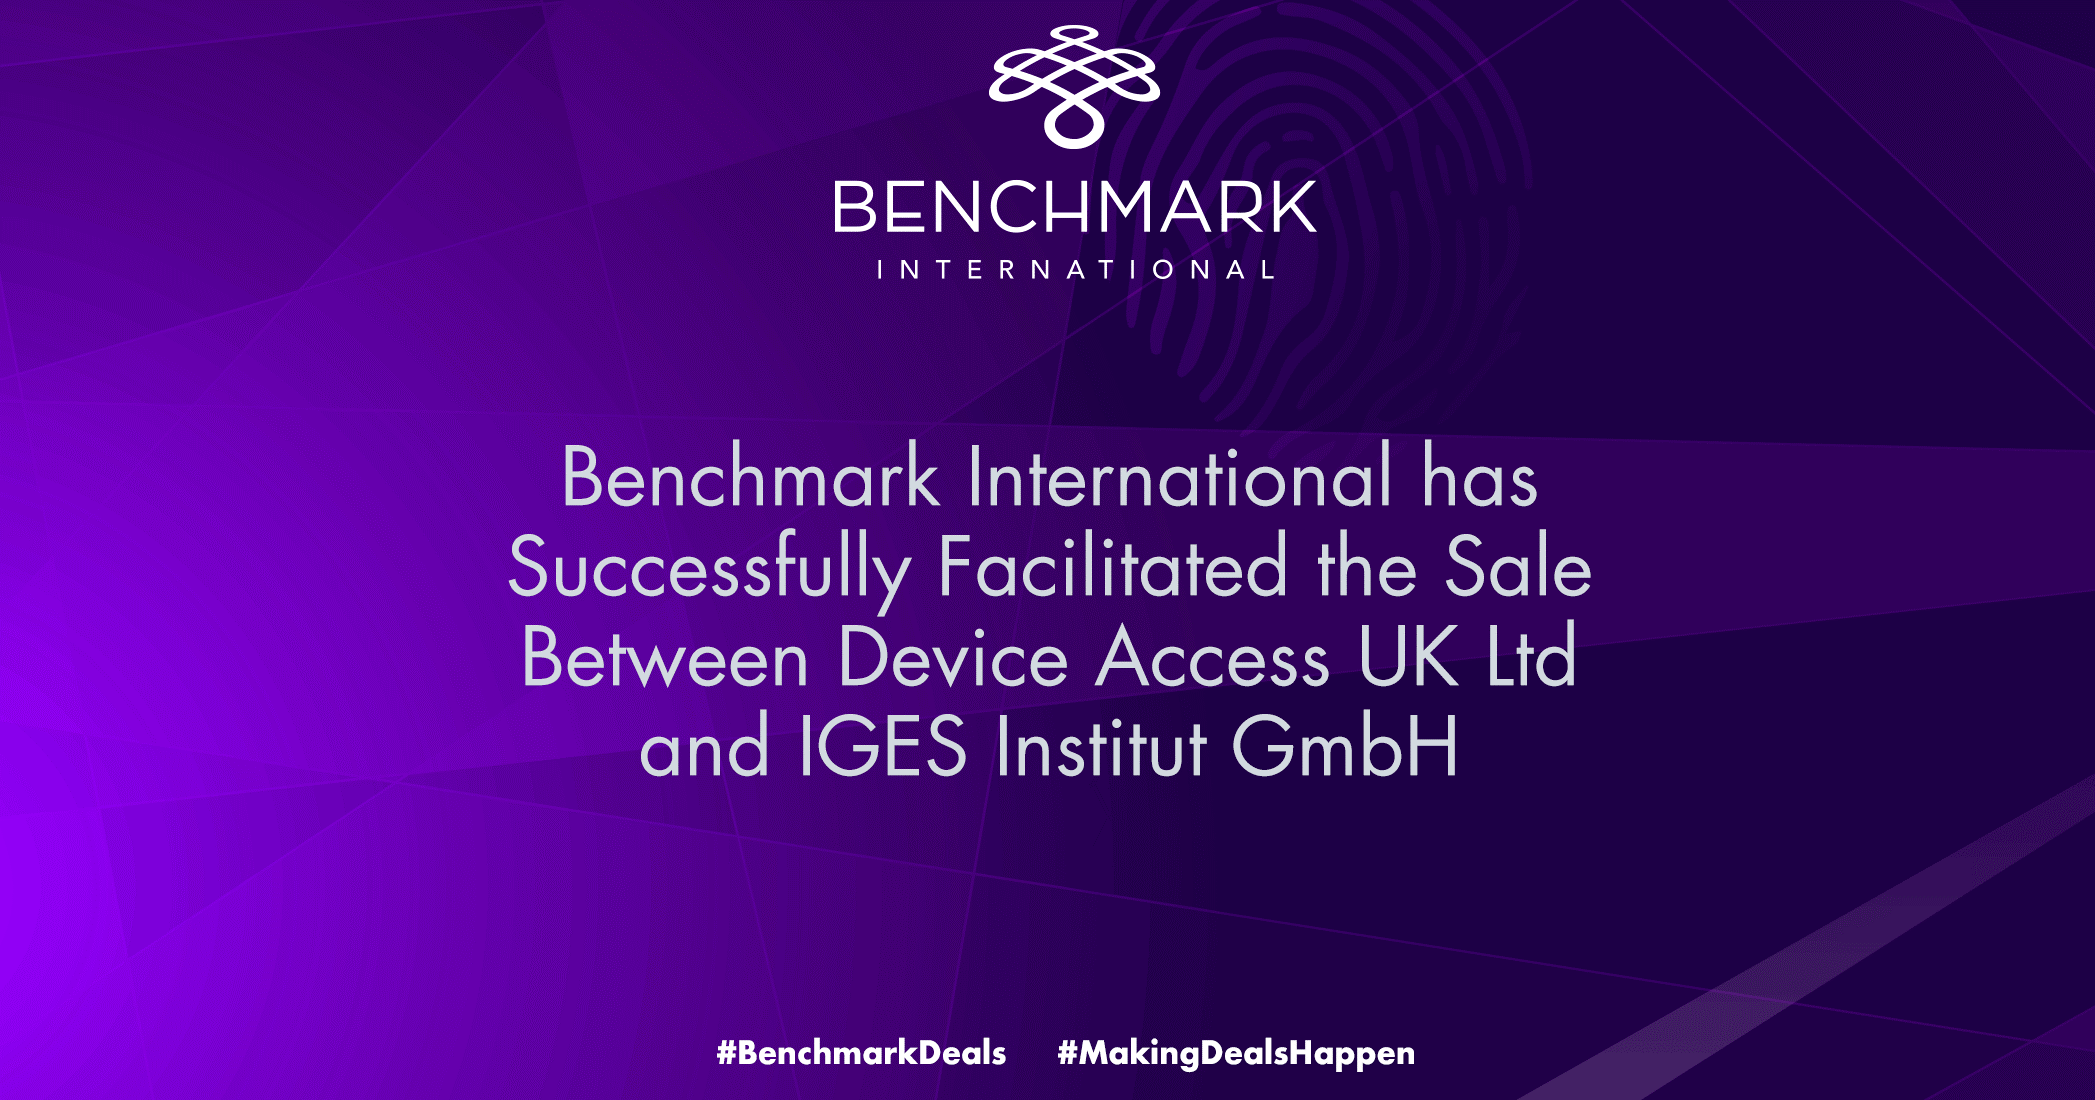 Benchmark International has Successfully Facilitated the Sale Between Device Access UK Ltd and IGES Institut GmbH